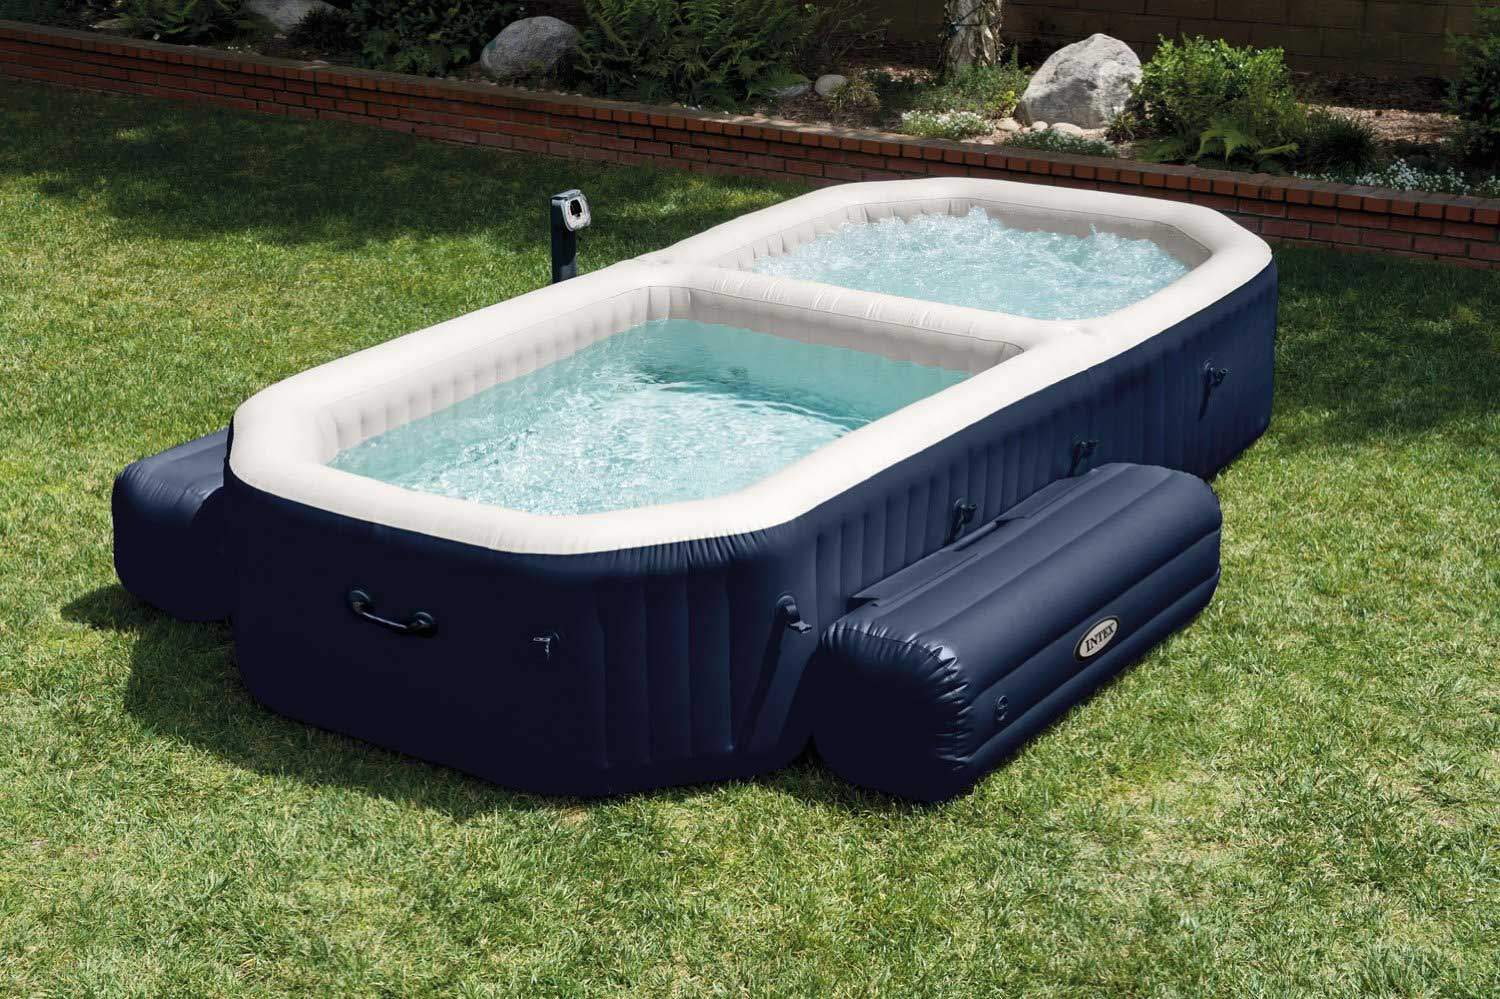 Jacuzzi Pool Hot Tub Intex Purespa Bubble Hot Tub And Pool Set Review Best